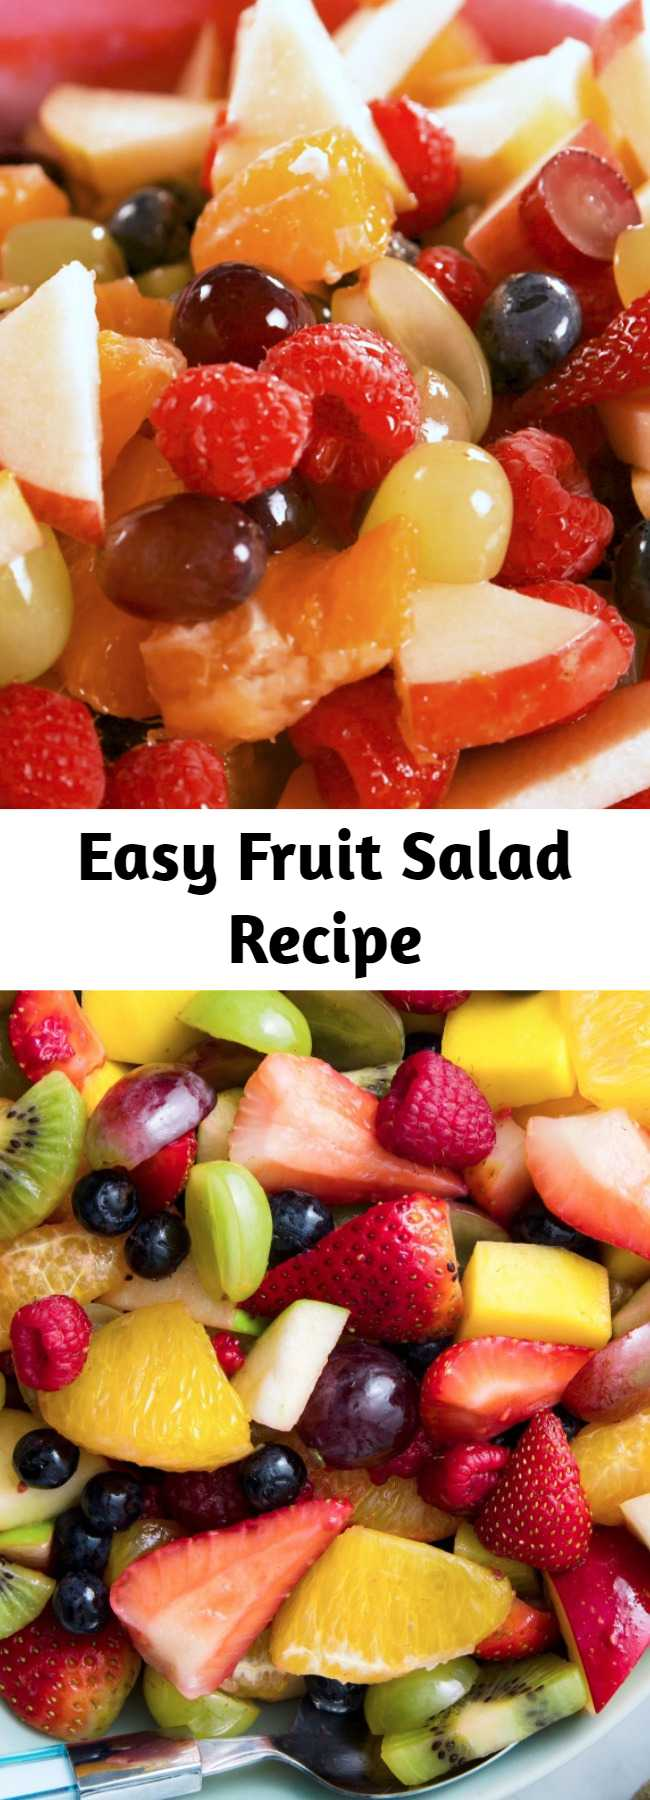 Easy Fruit Salad Recipe - Really? A recipe for fruit salad? Yes, you need it. Because this dressing takes strawberries, raspberries, and mangoes to a whole new level. #easyrecipe #fruitsalad #fruit #dessert #summer